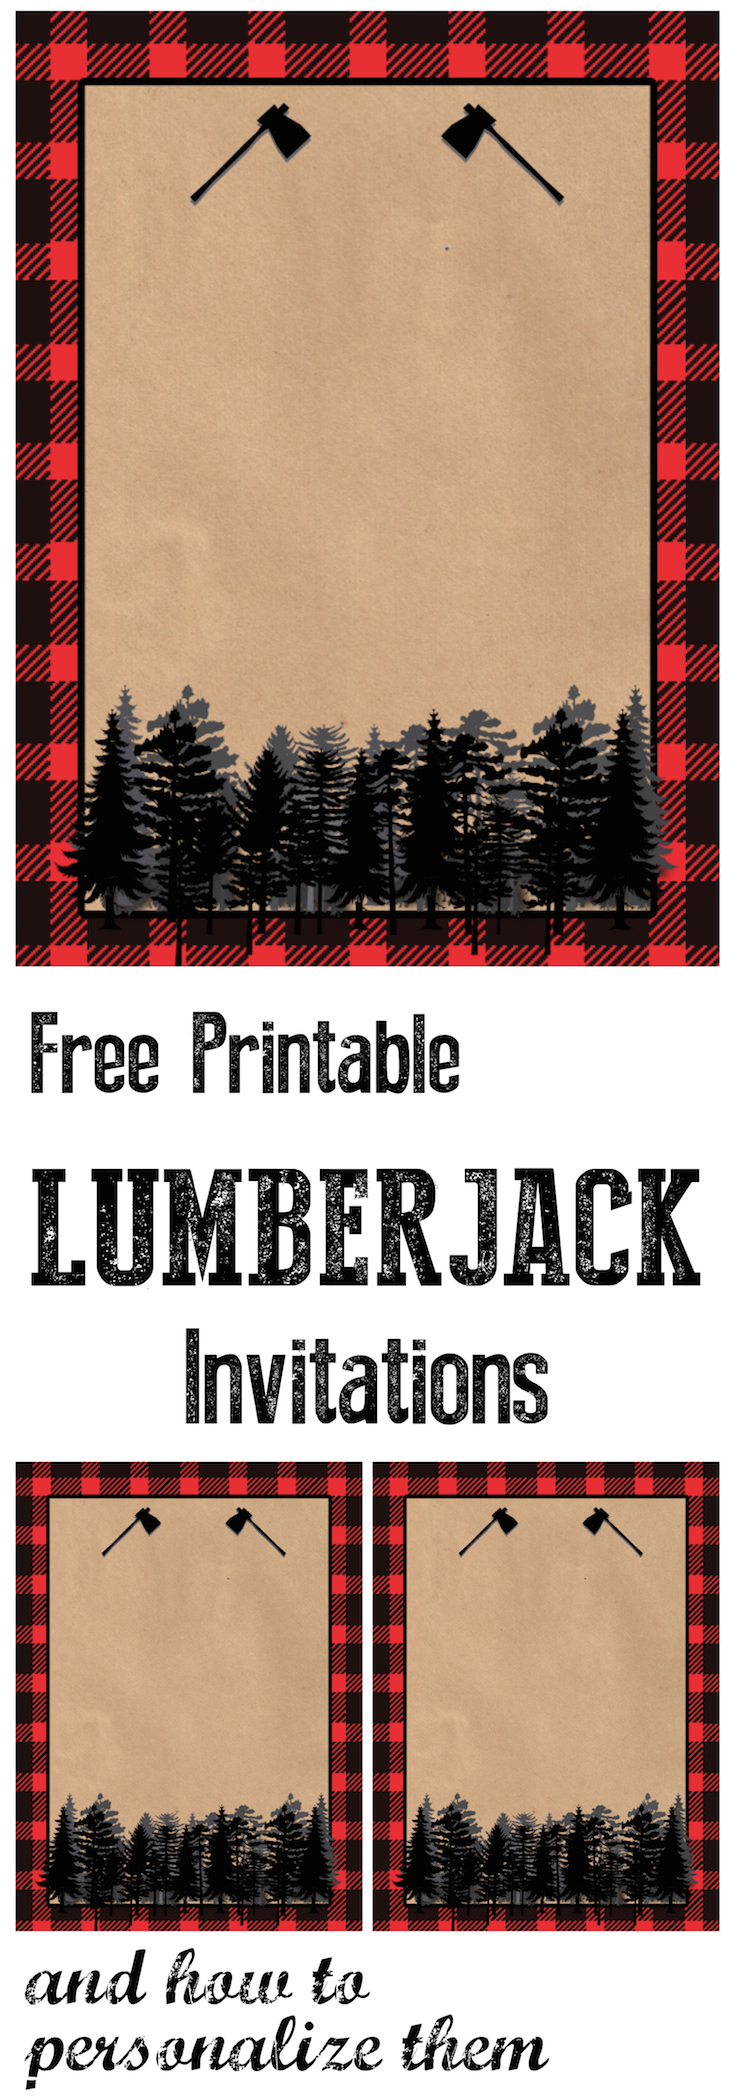 Lumberjack Invitation Free Printable. Throw an adorabe woodsy lumberjack party and use this invitation to get started. Includes a tutorial on how to personalize these.